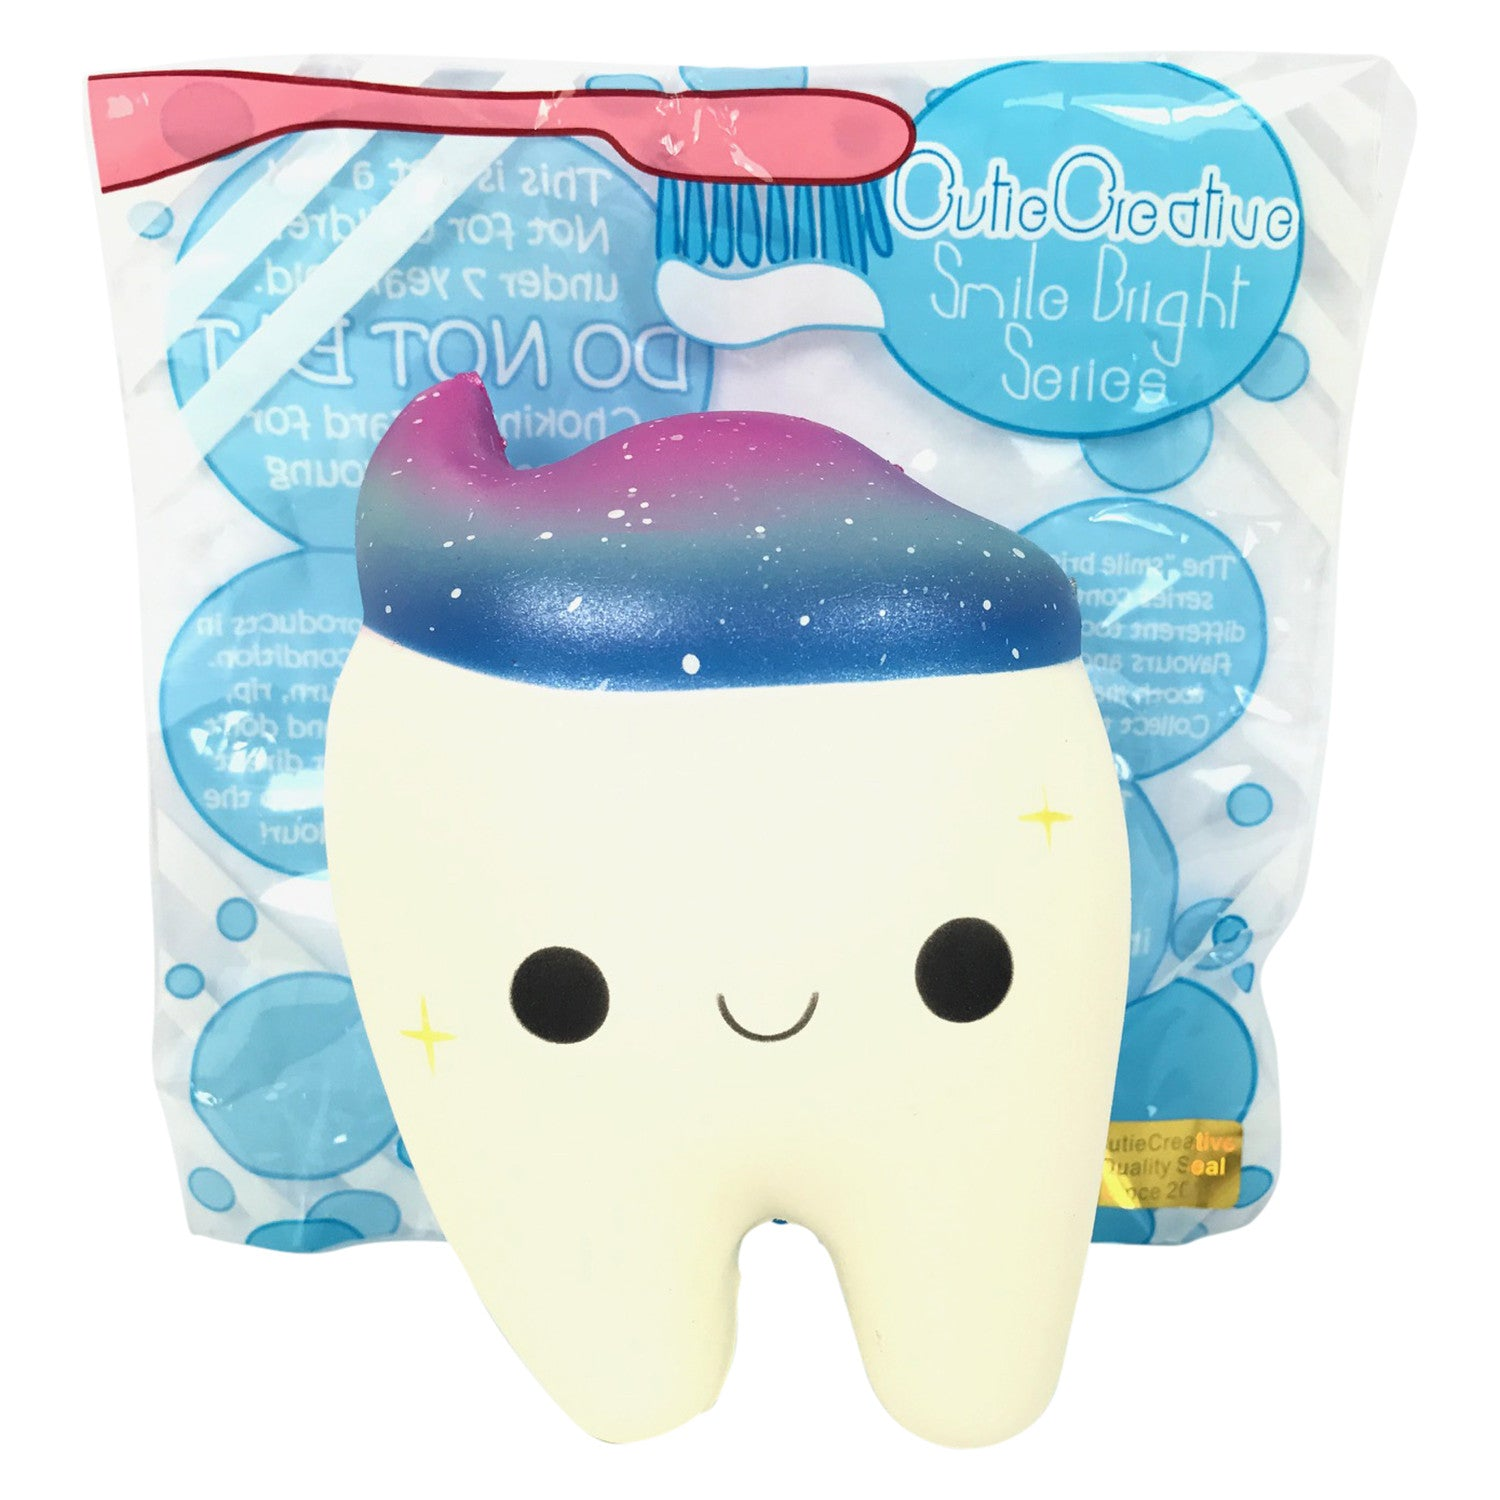 Squishy Galaxy Tooth : SCENTED Cutie Creative Galaxy Tooth! Jenna Lyn Squishies and Accessories